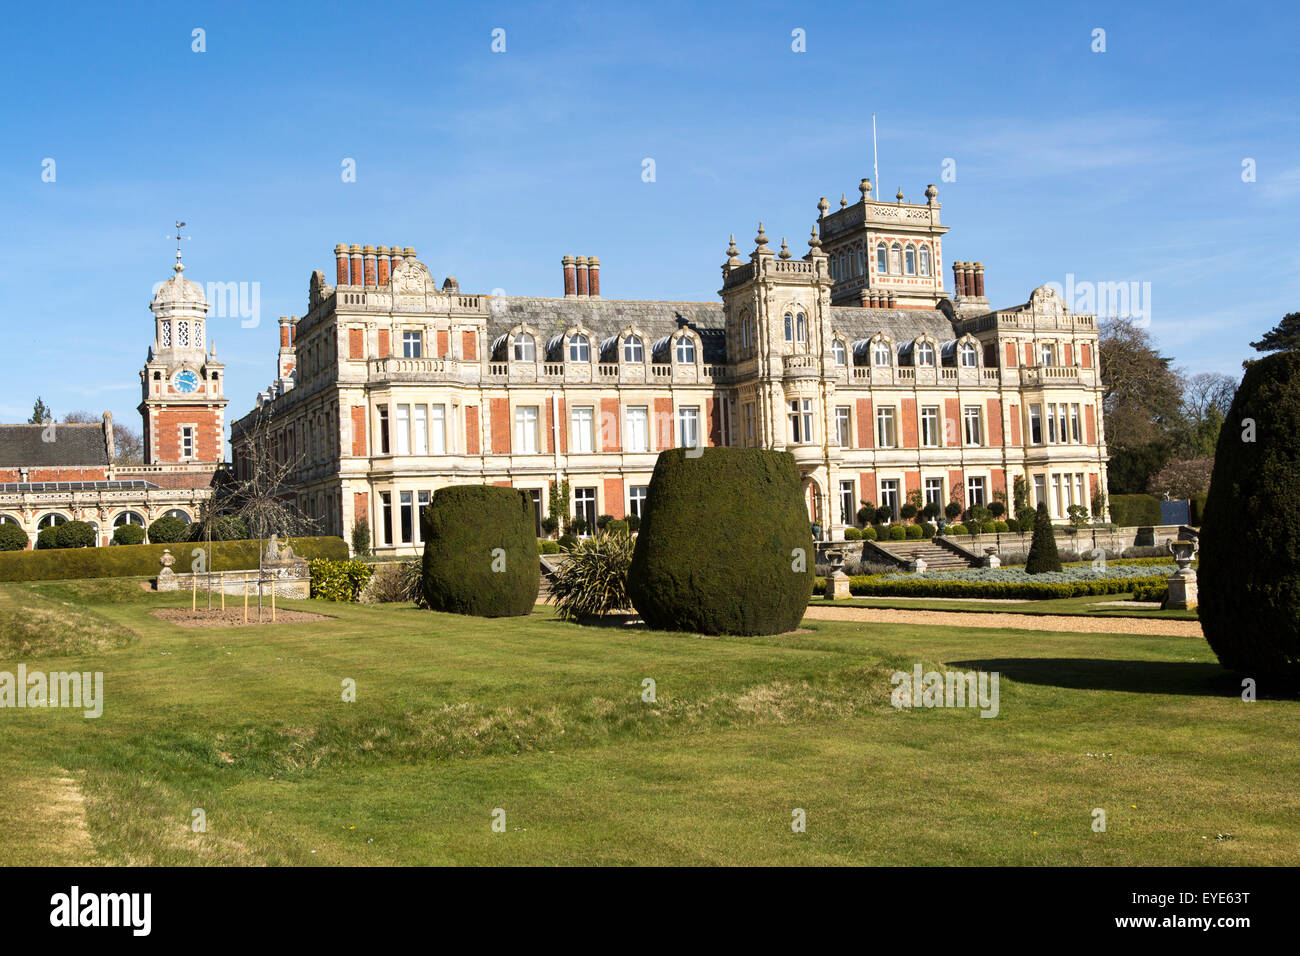 Somerleyton Hall country house, near Lowestoft, Suffolk, England, UK - Stock Image